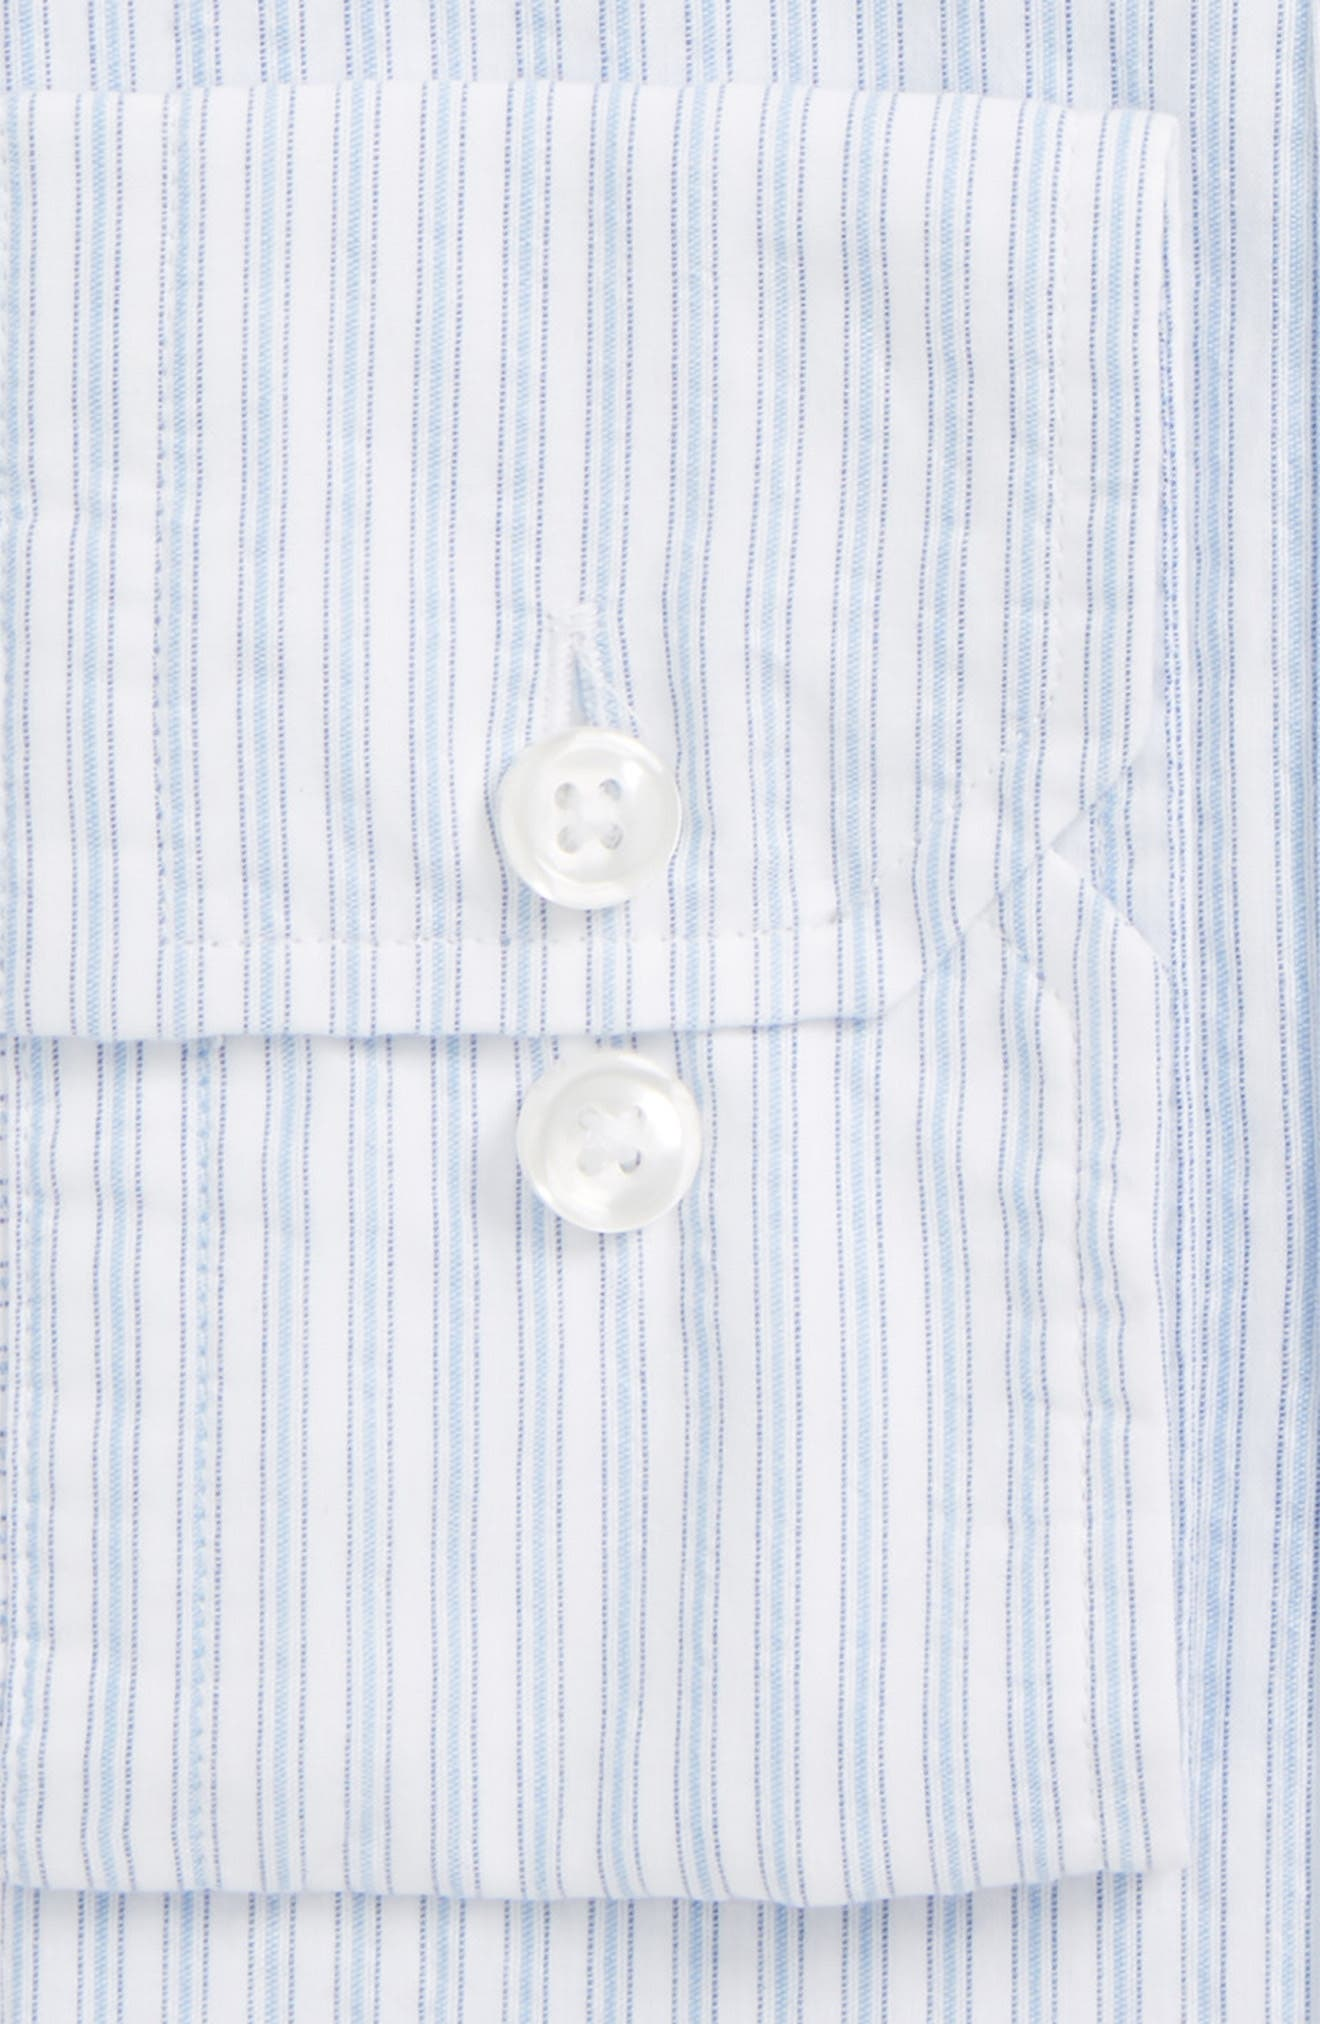 Trim Fit Stripe Dress Shirt,                             Alternate thumbnail 2, color,                             Blue Stripe